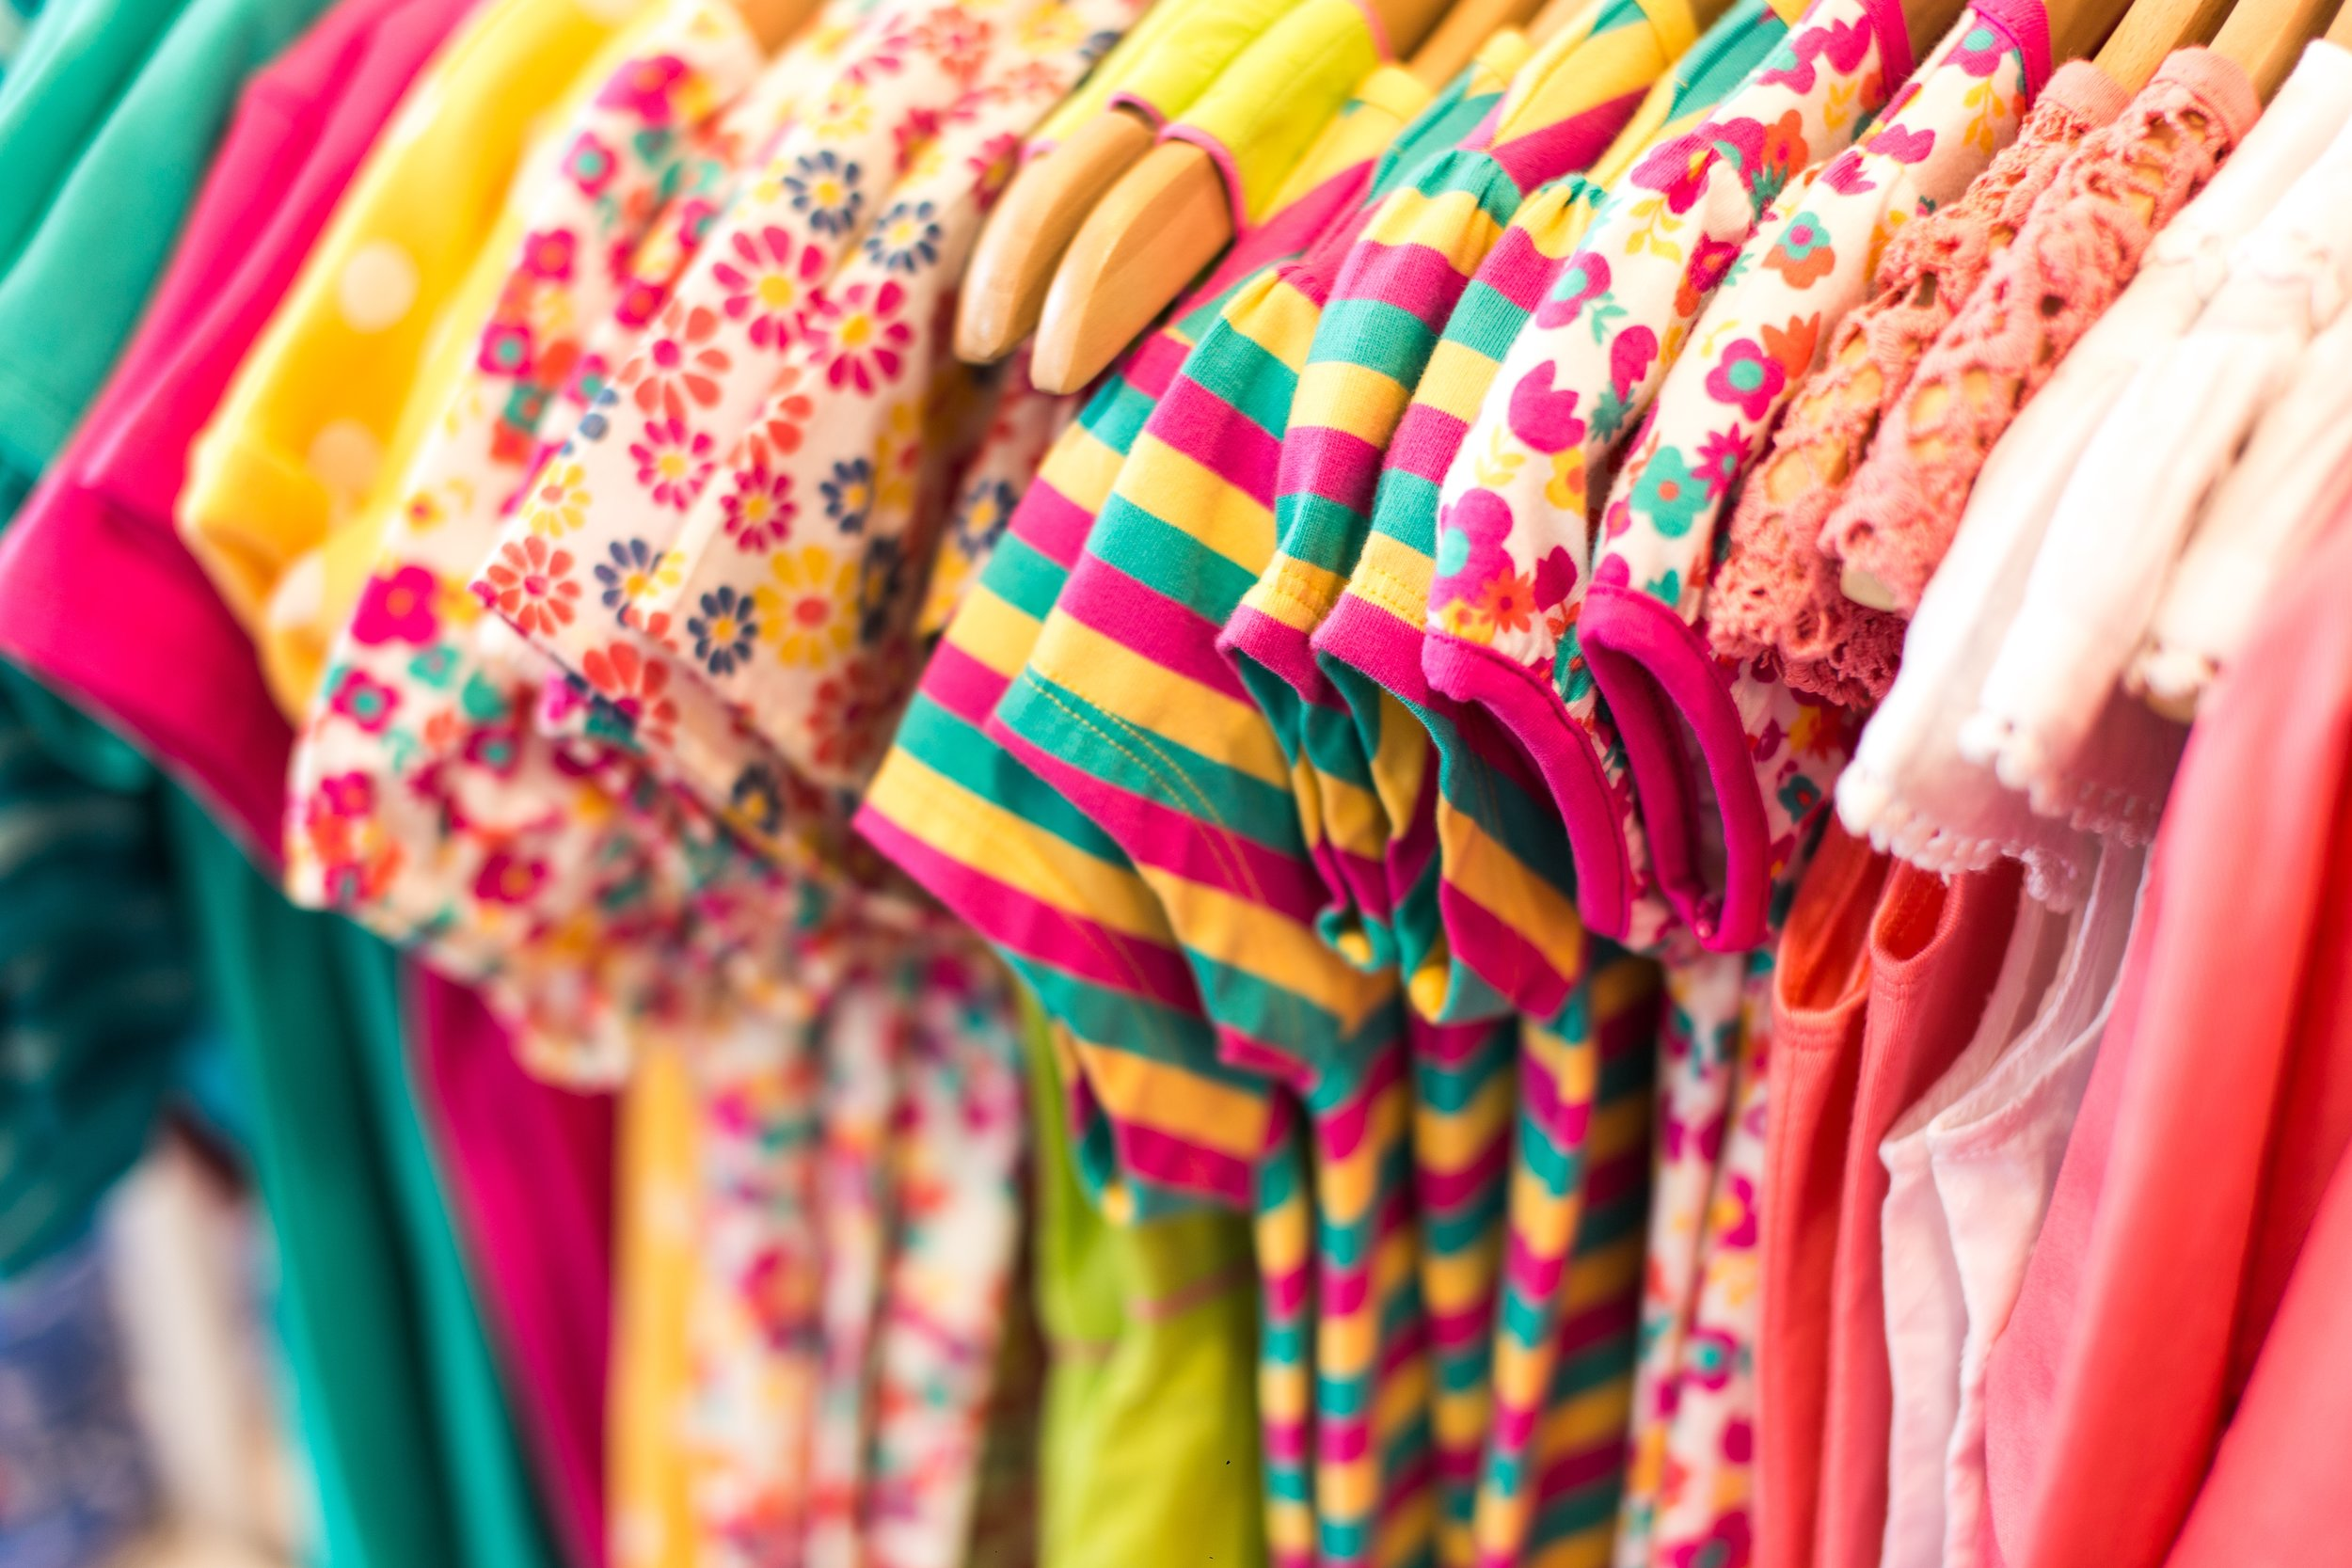 Clothing rail of colourful clothes